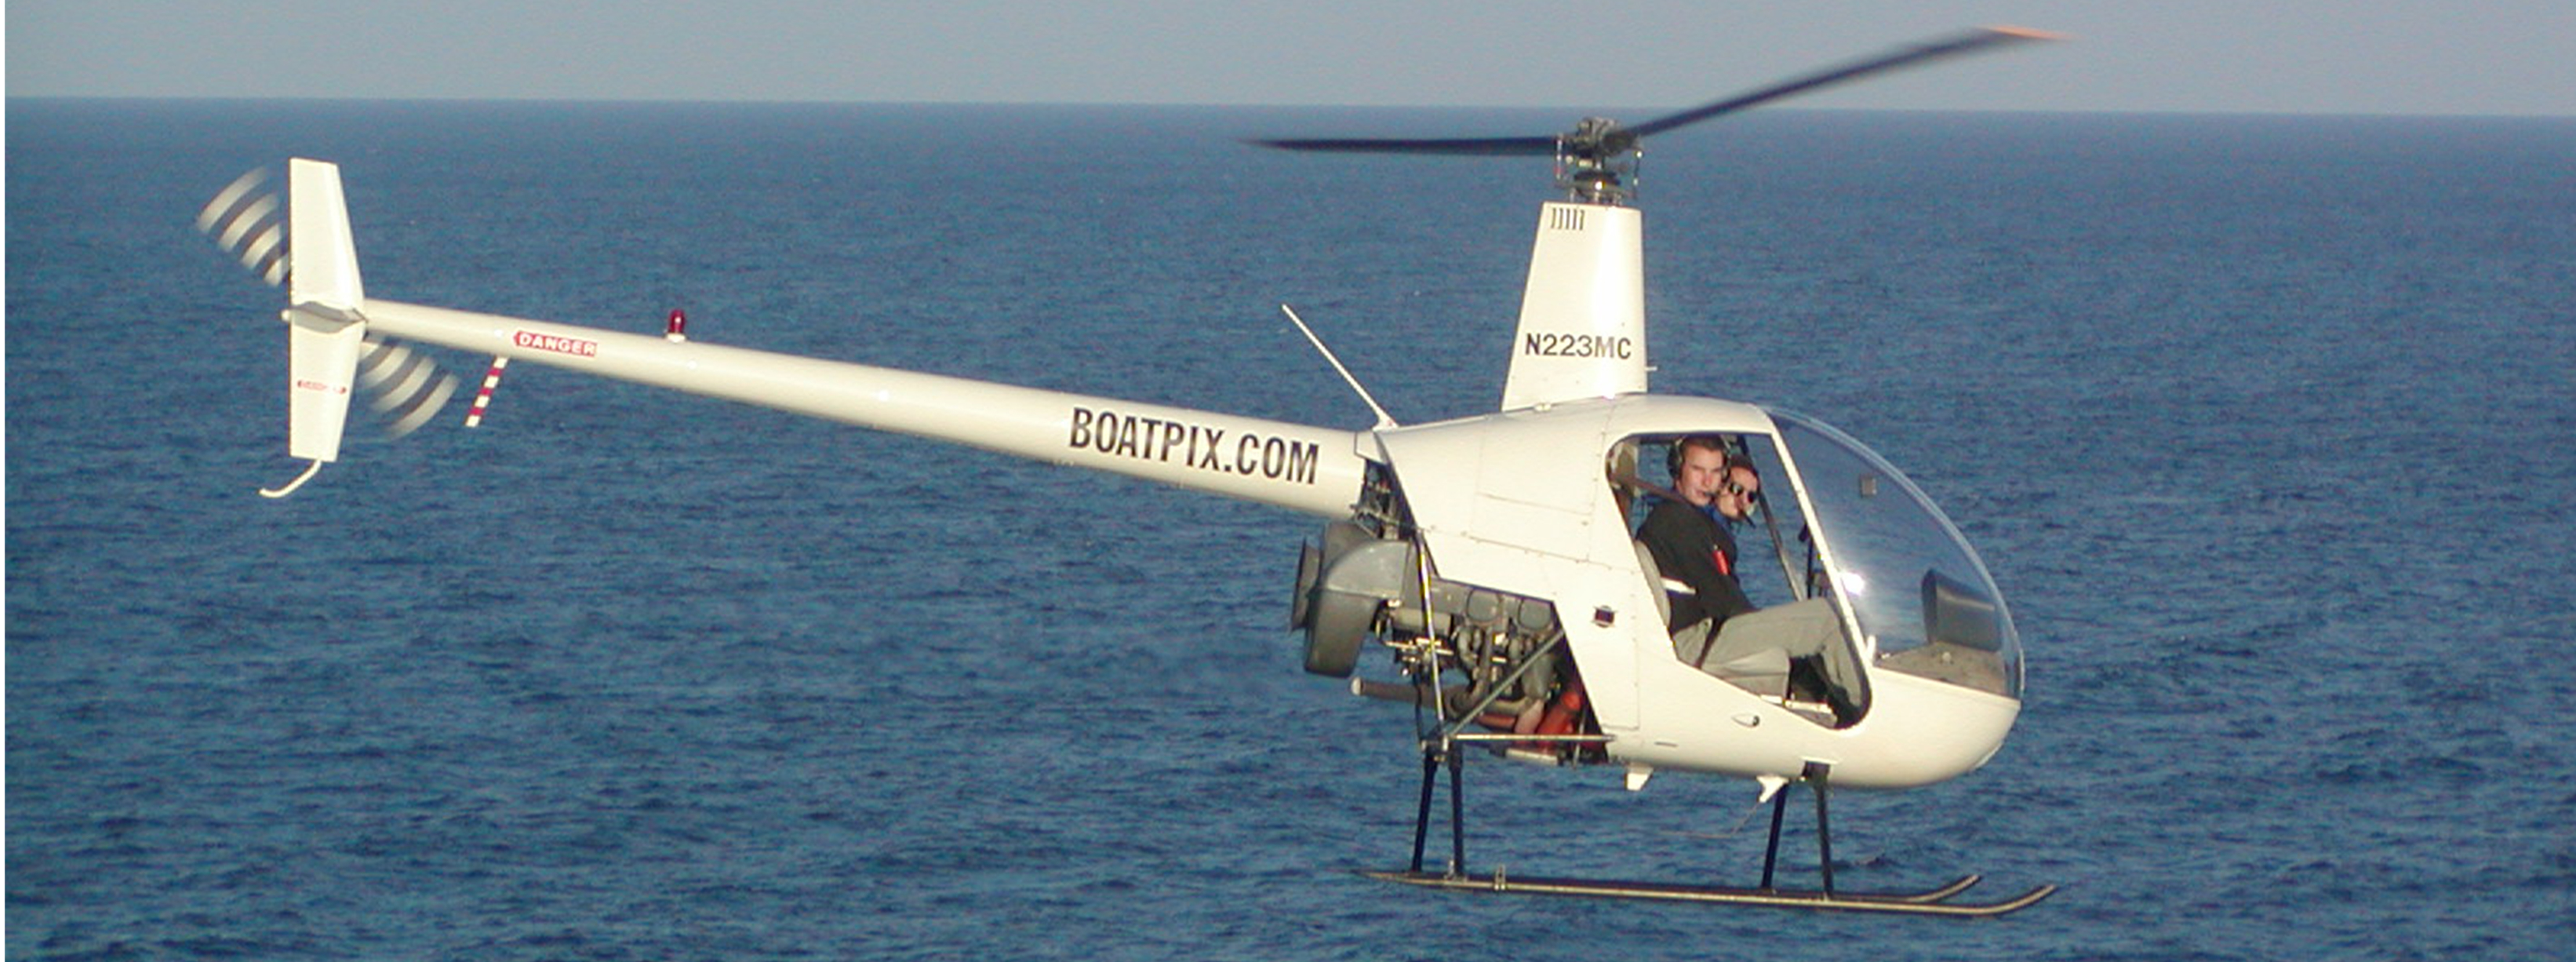 Commercial Pilot License Cplh Helicopter Academy